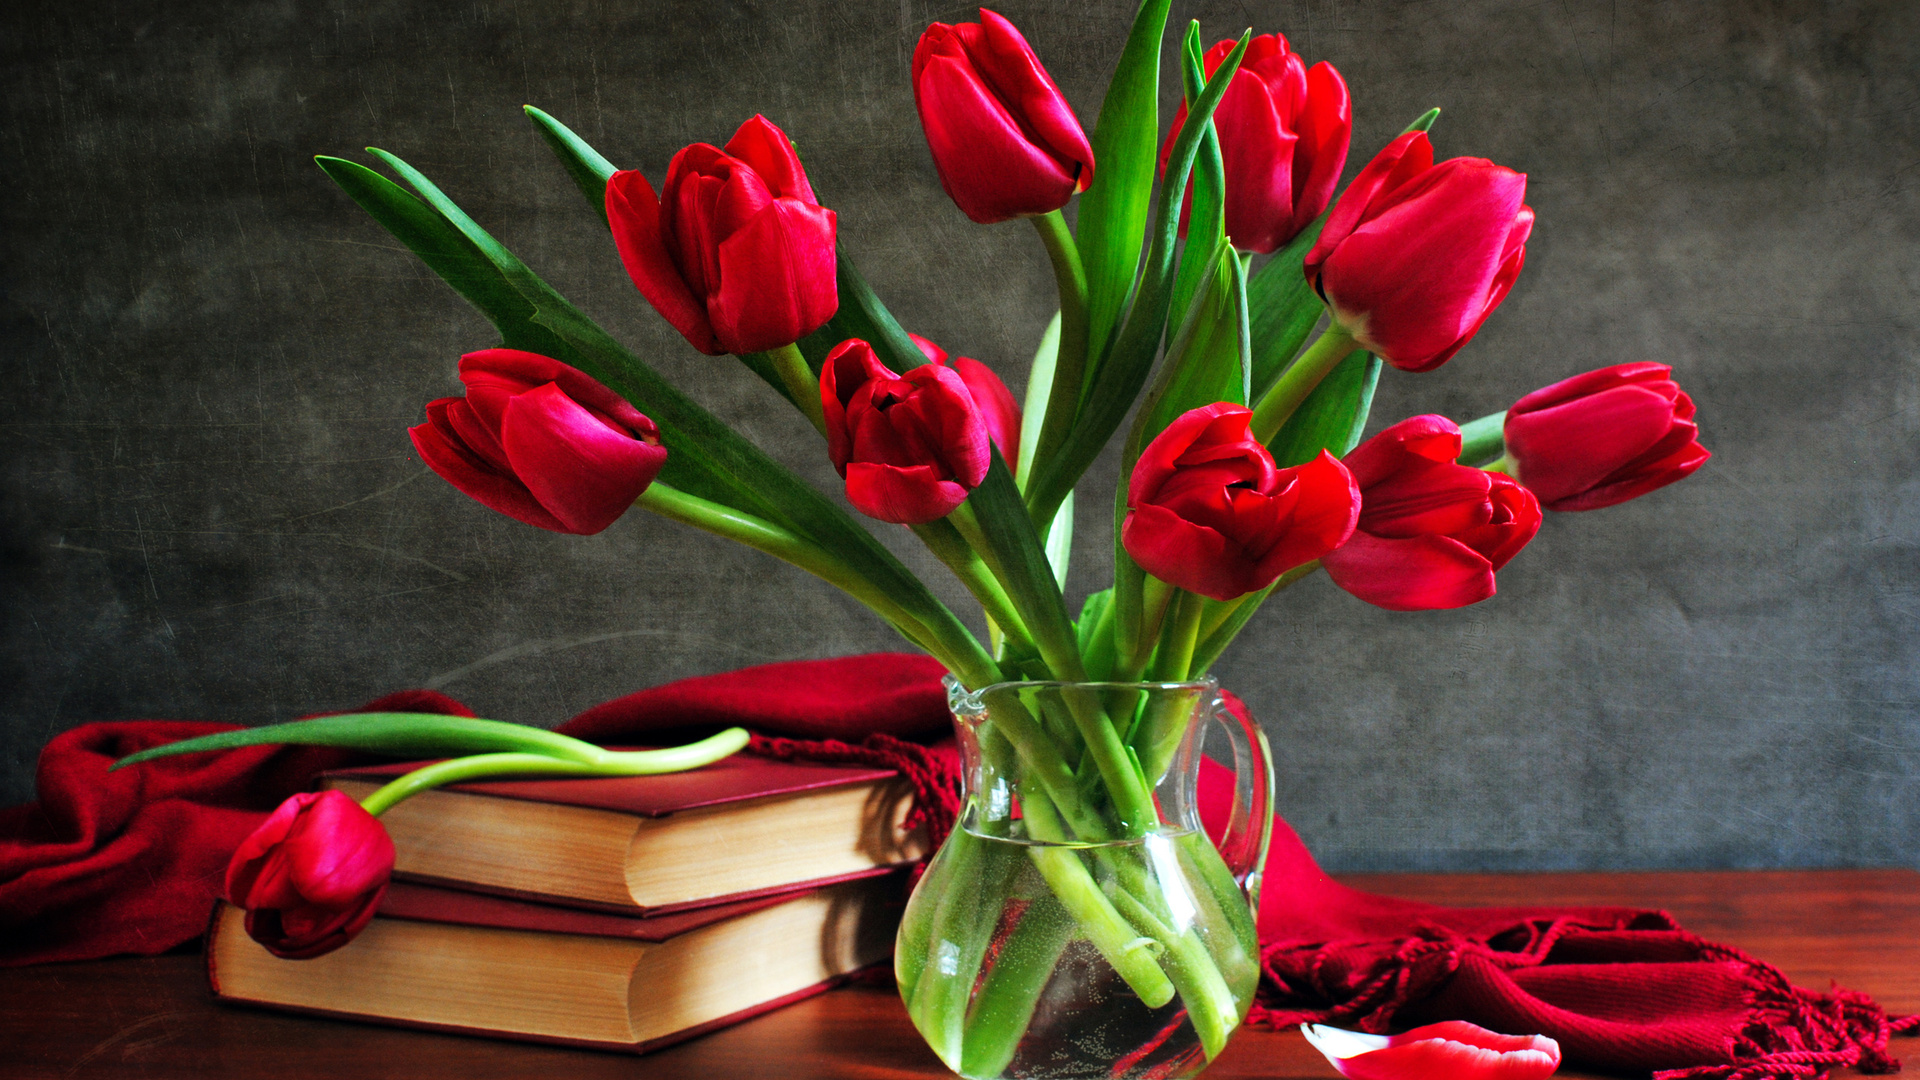 of Red Roses Buke for Valentine s Day  High Quality HD Wallpaper